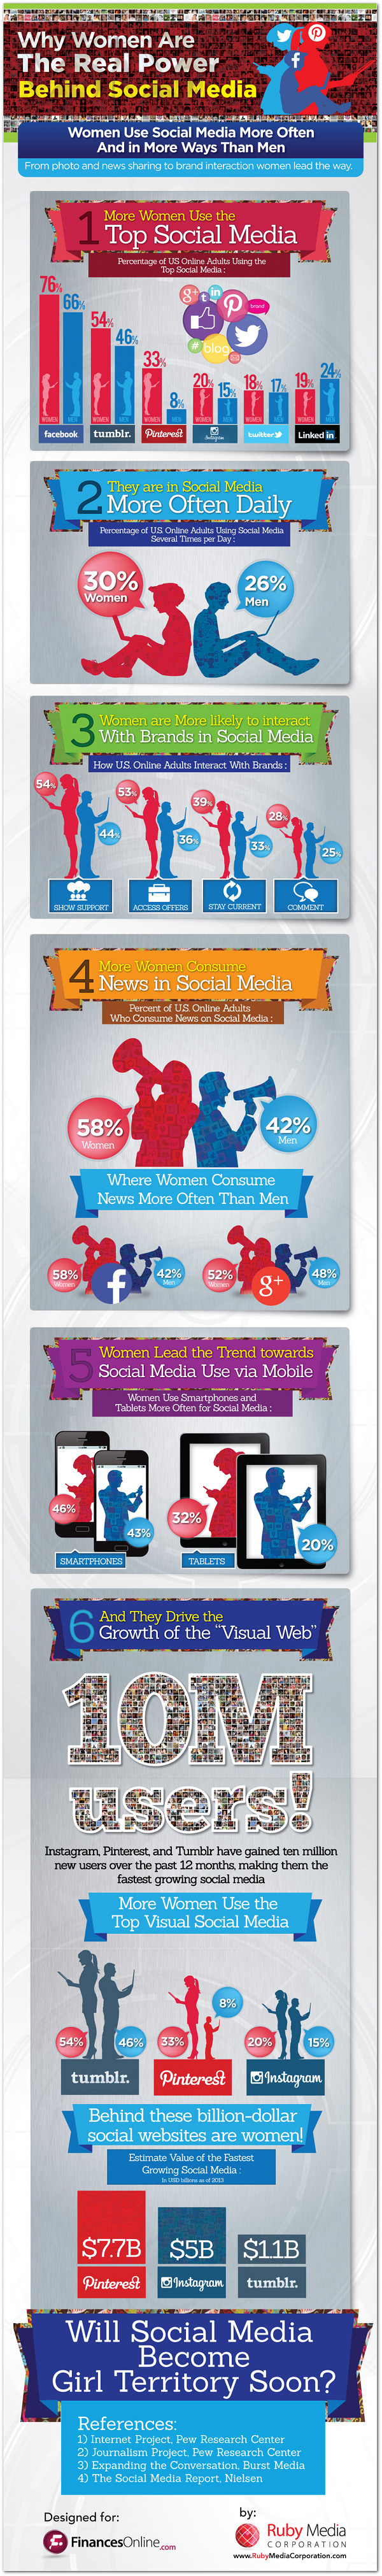 women-power-social-media-infographic